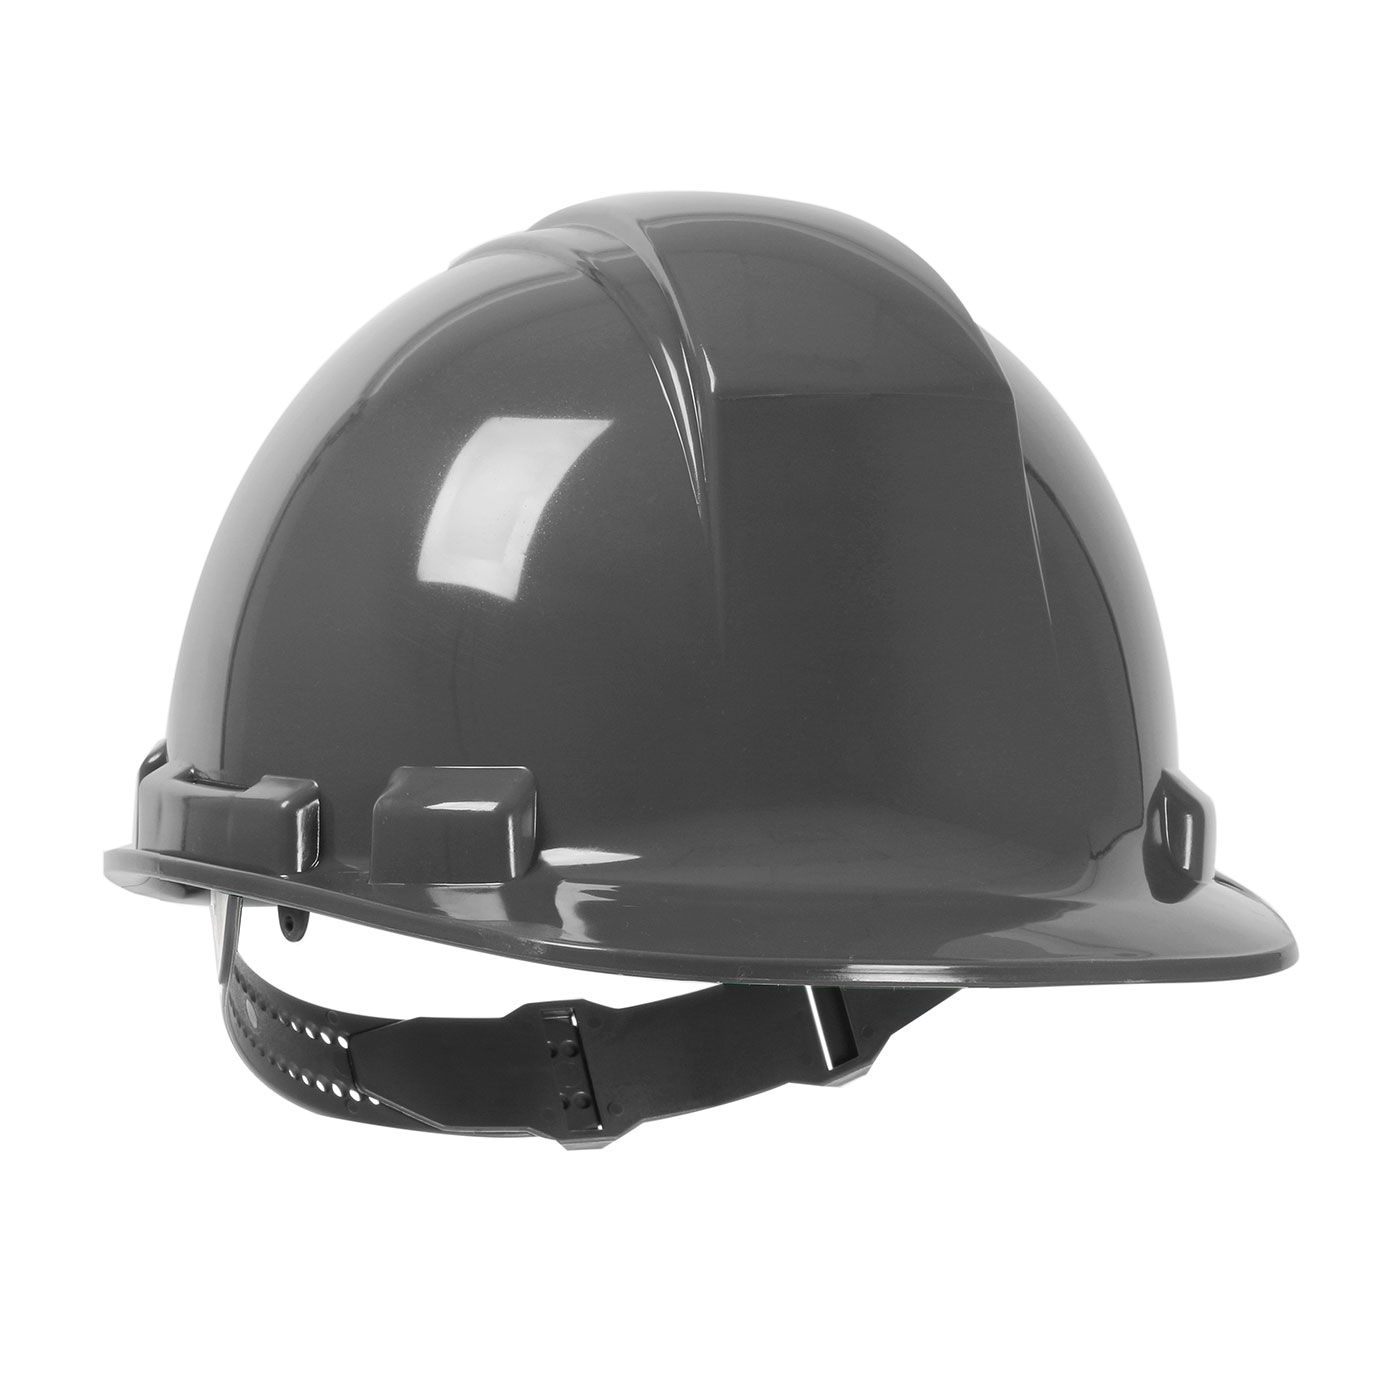 280-HP241 PIP® Dynamic Whistler™ Cap Style Hard Hat with HDPE Shell, 4-Point Textile Suspension and Pin-Lock Adjustment - Dark Gray